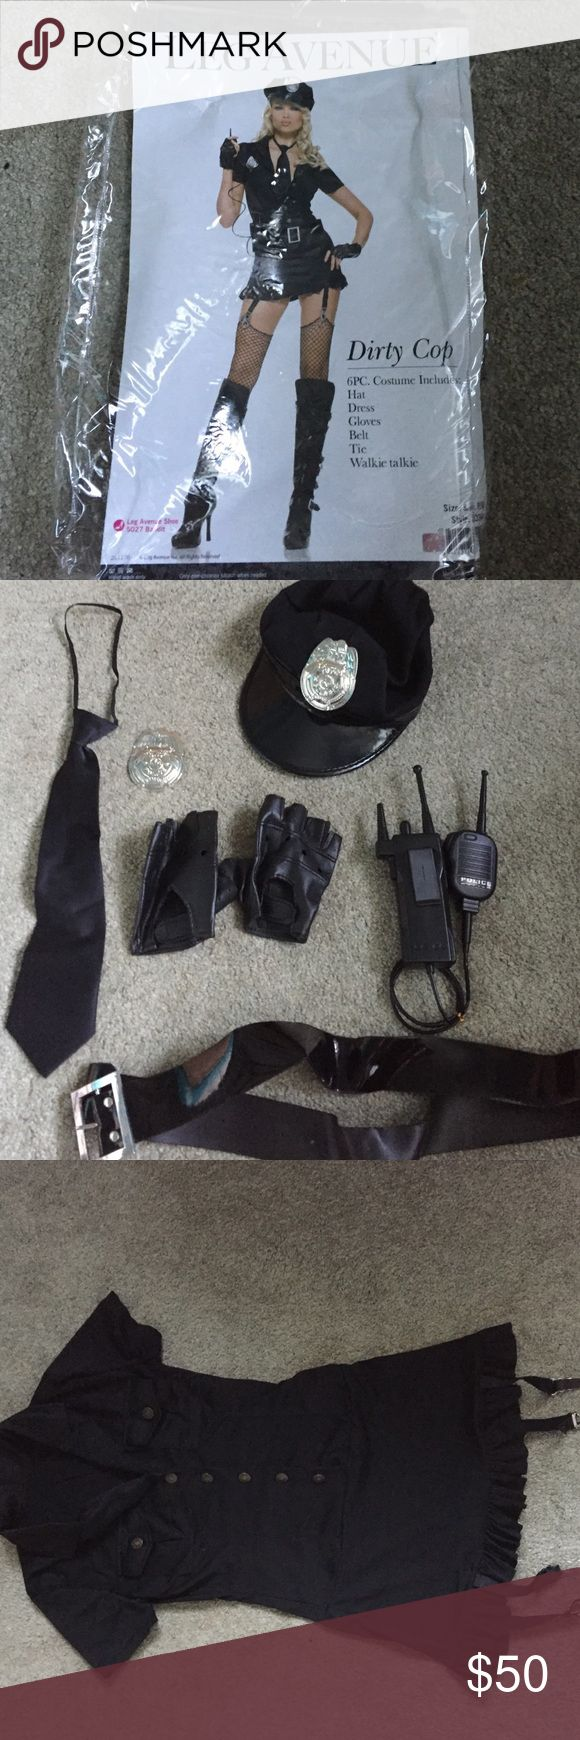 Leg Avenue Dirty Cop Halloween Costume This set includes dress, hat, gloves, belt, tie, and walkie talkie. this is perfect for a frat party or a night on the town. This costume is a size S/M and has only been worn once. (Boots not included). The dress also had garter spots to add stockings or whatever leg avenue Other